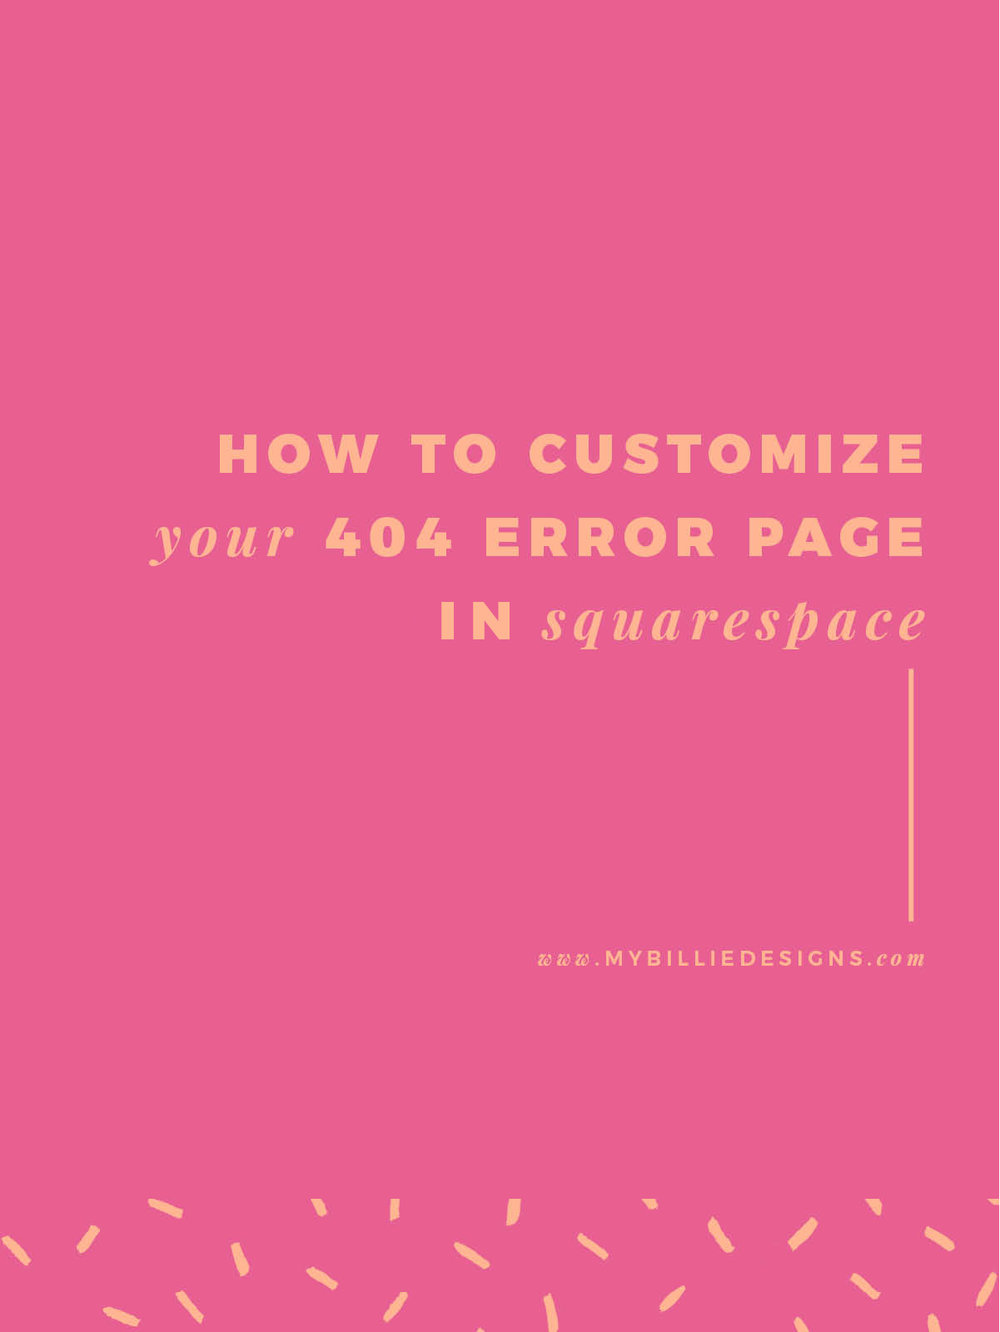 How To Customize Your 404 Error Page In Squarespace --> Click through for full post!